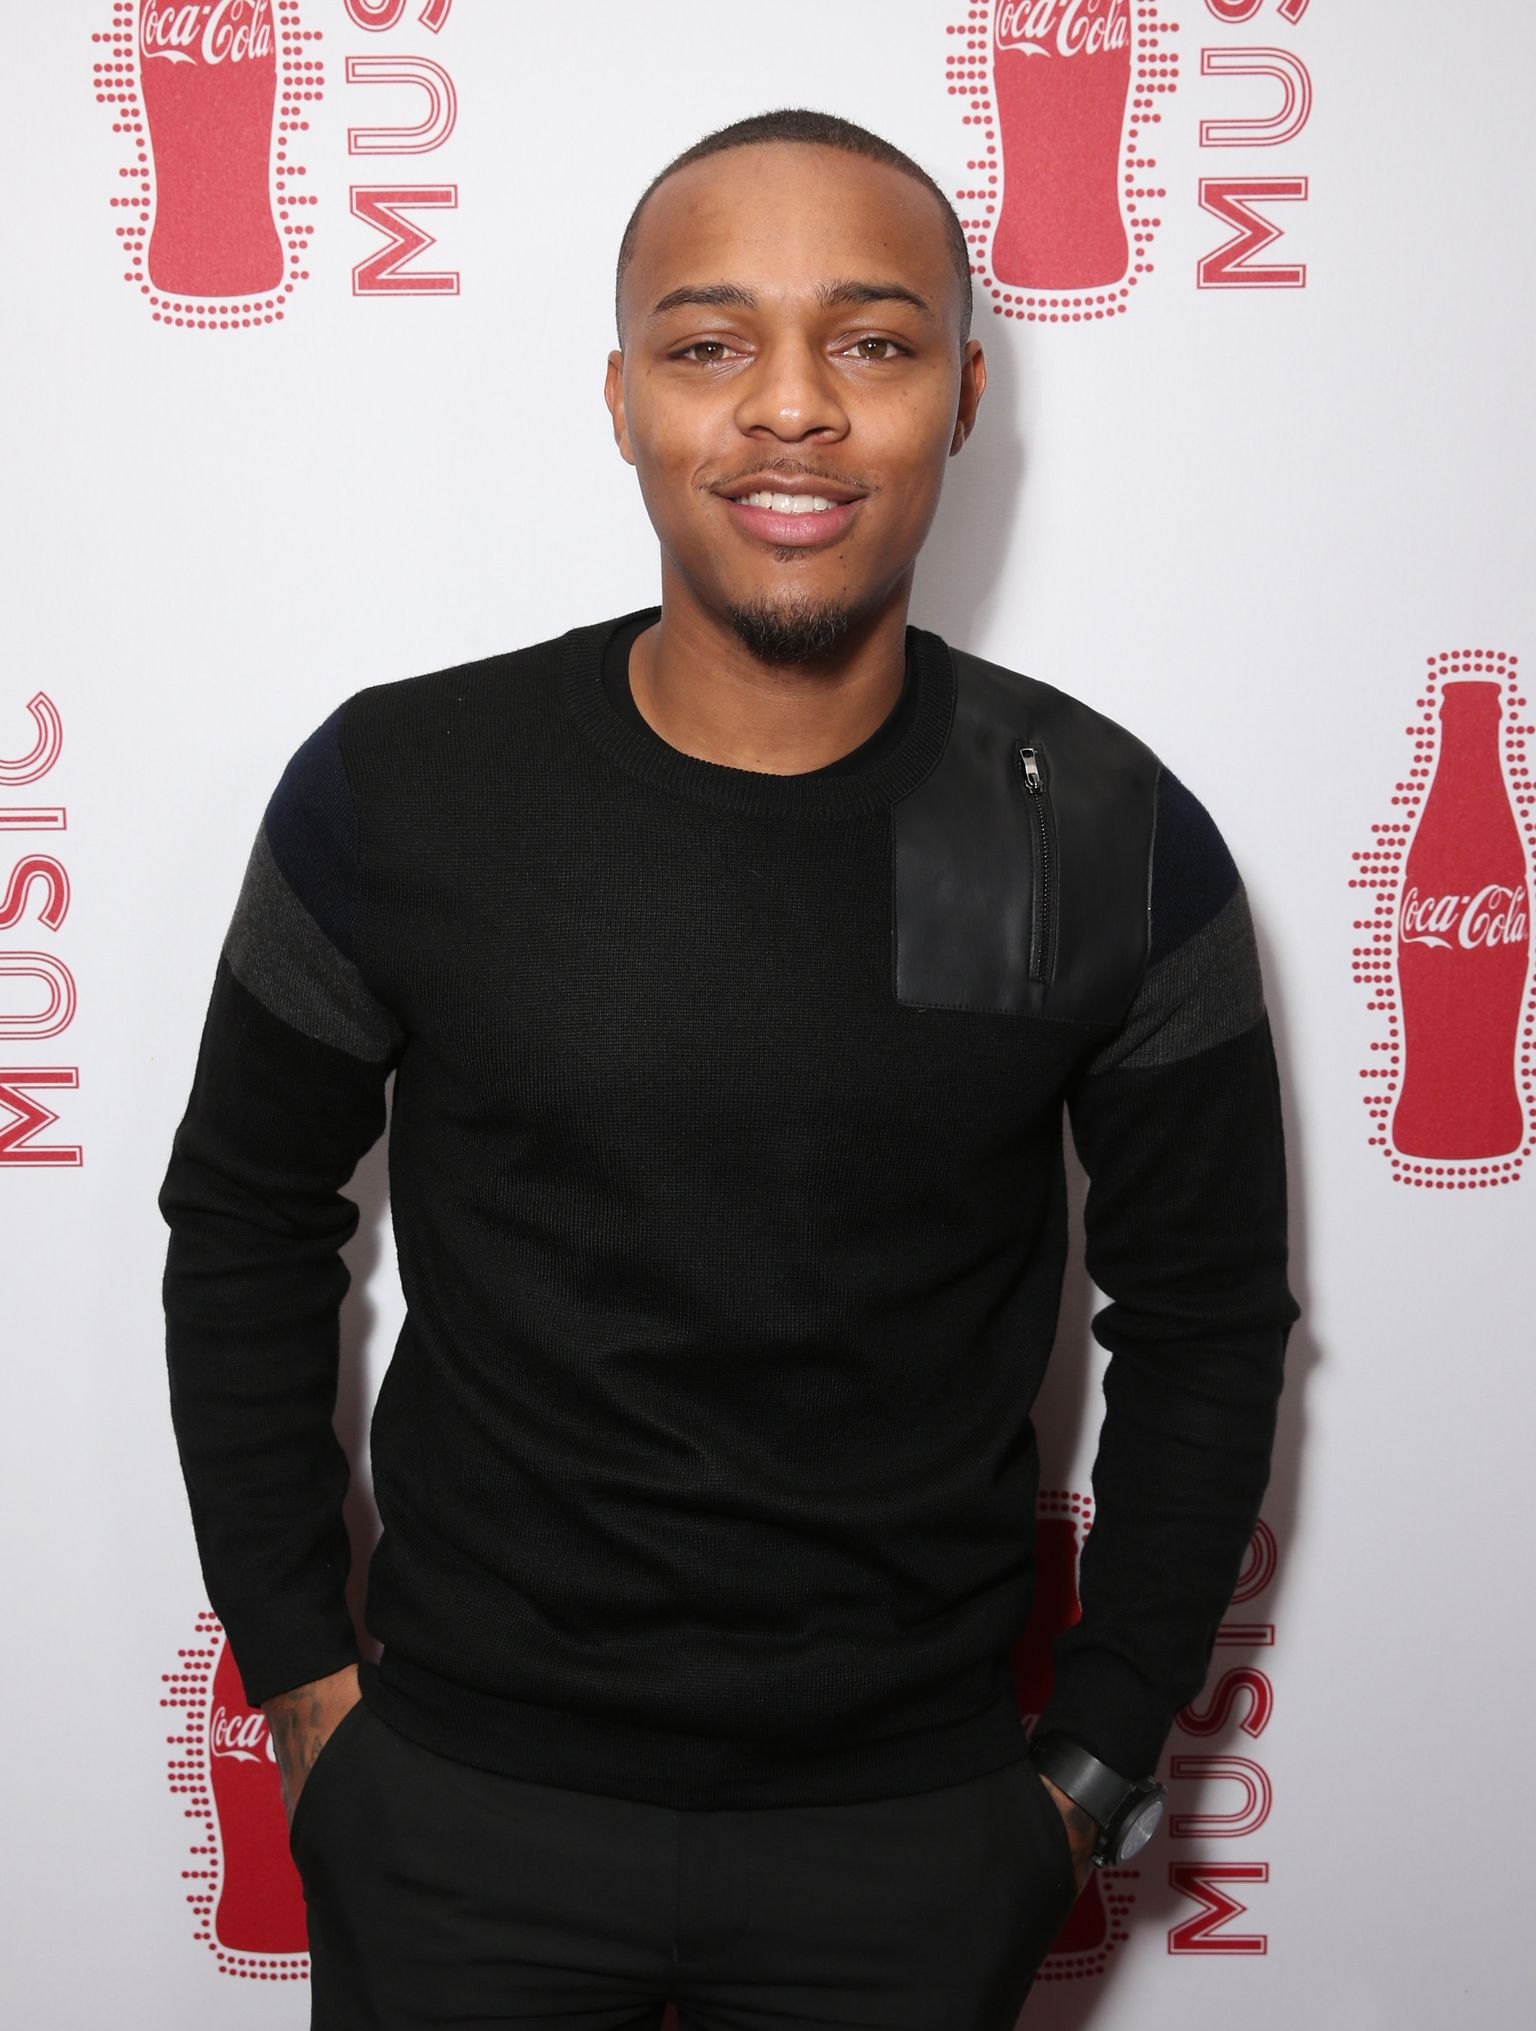 Rapper Bow Wow at the American Music Awards Pre Party on November 20, 2015 in Los Angeles. | Photo: Getty Images